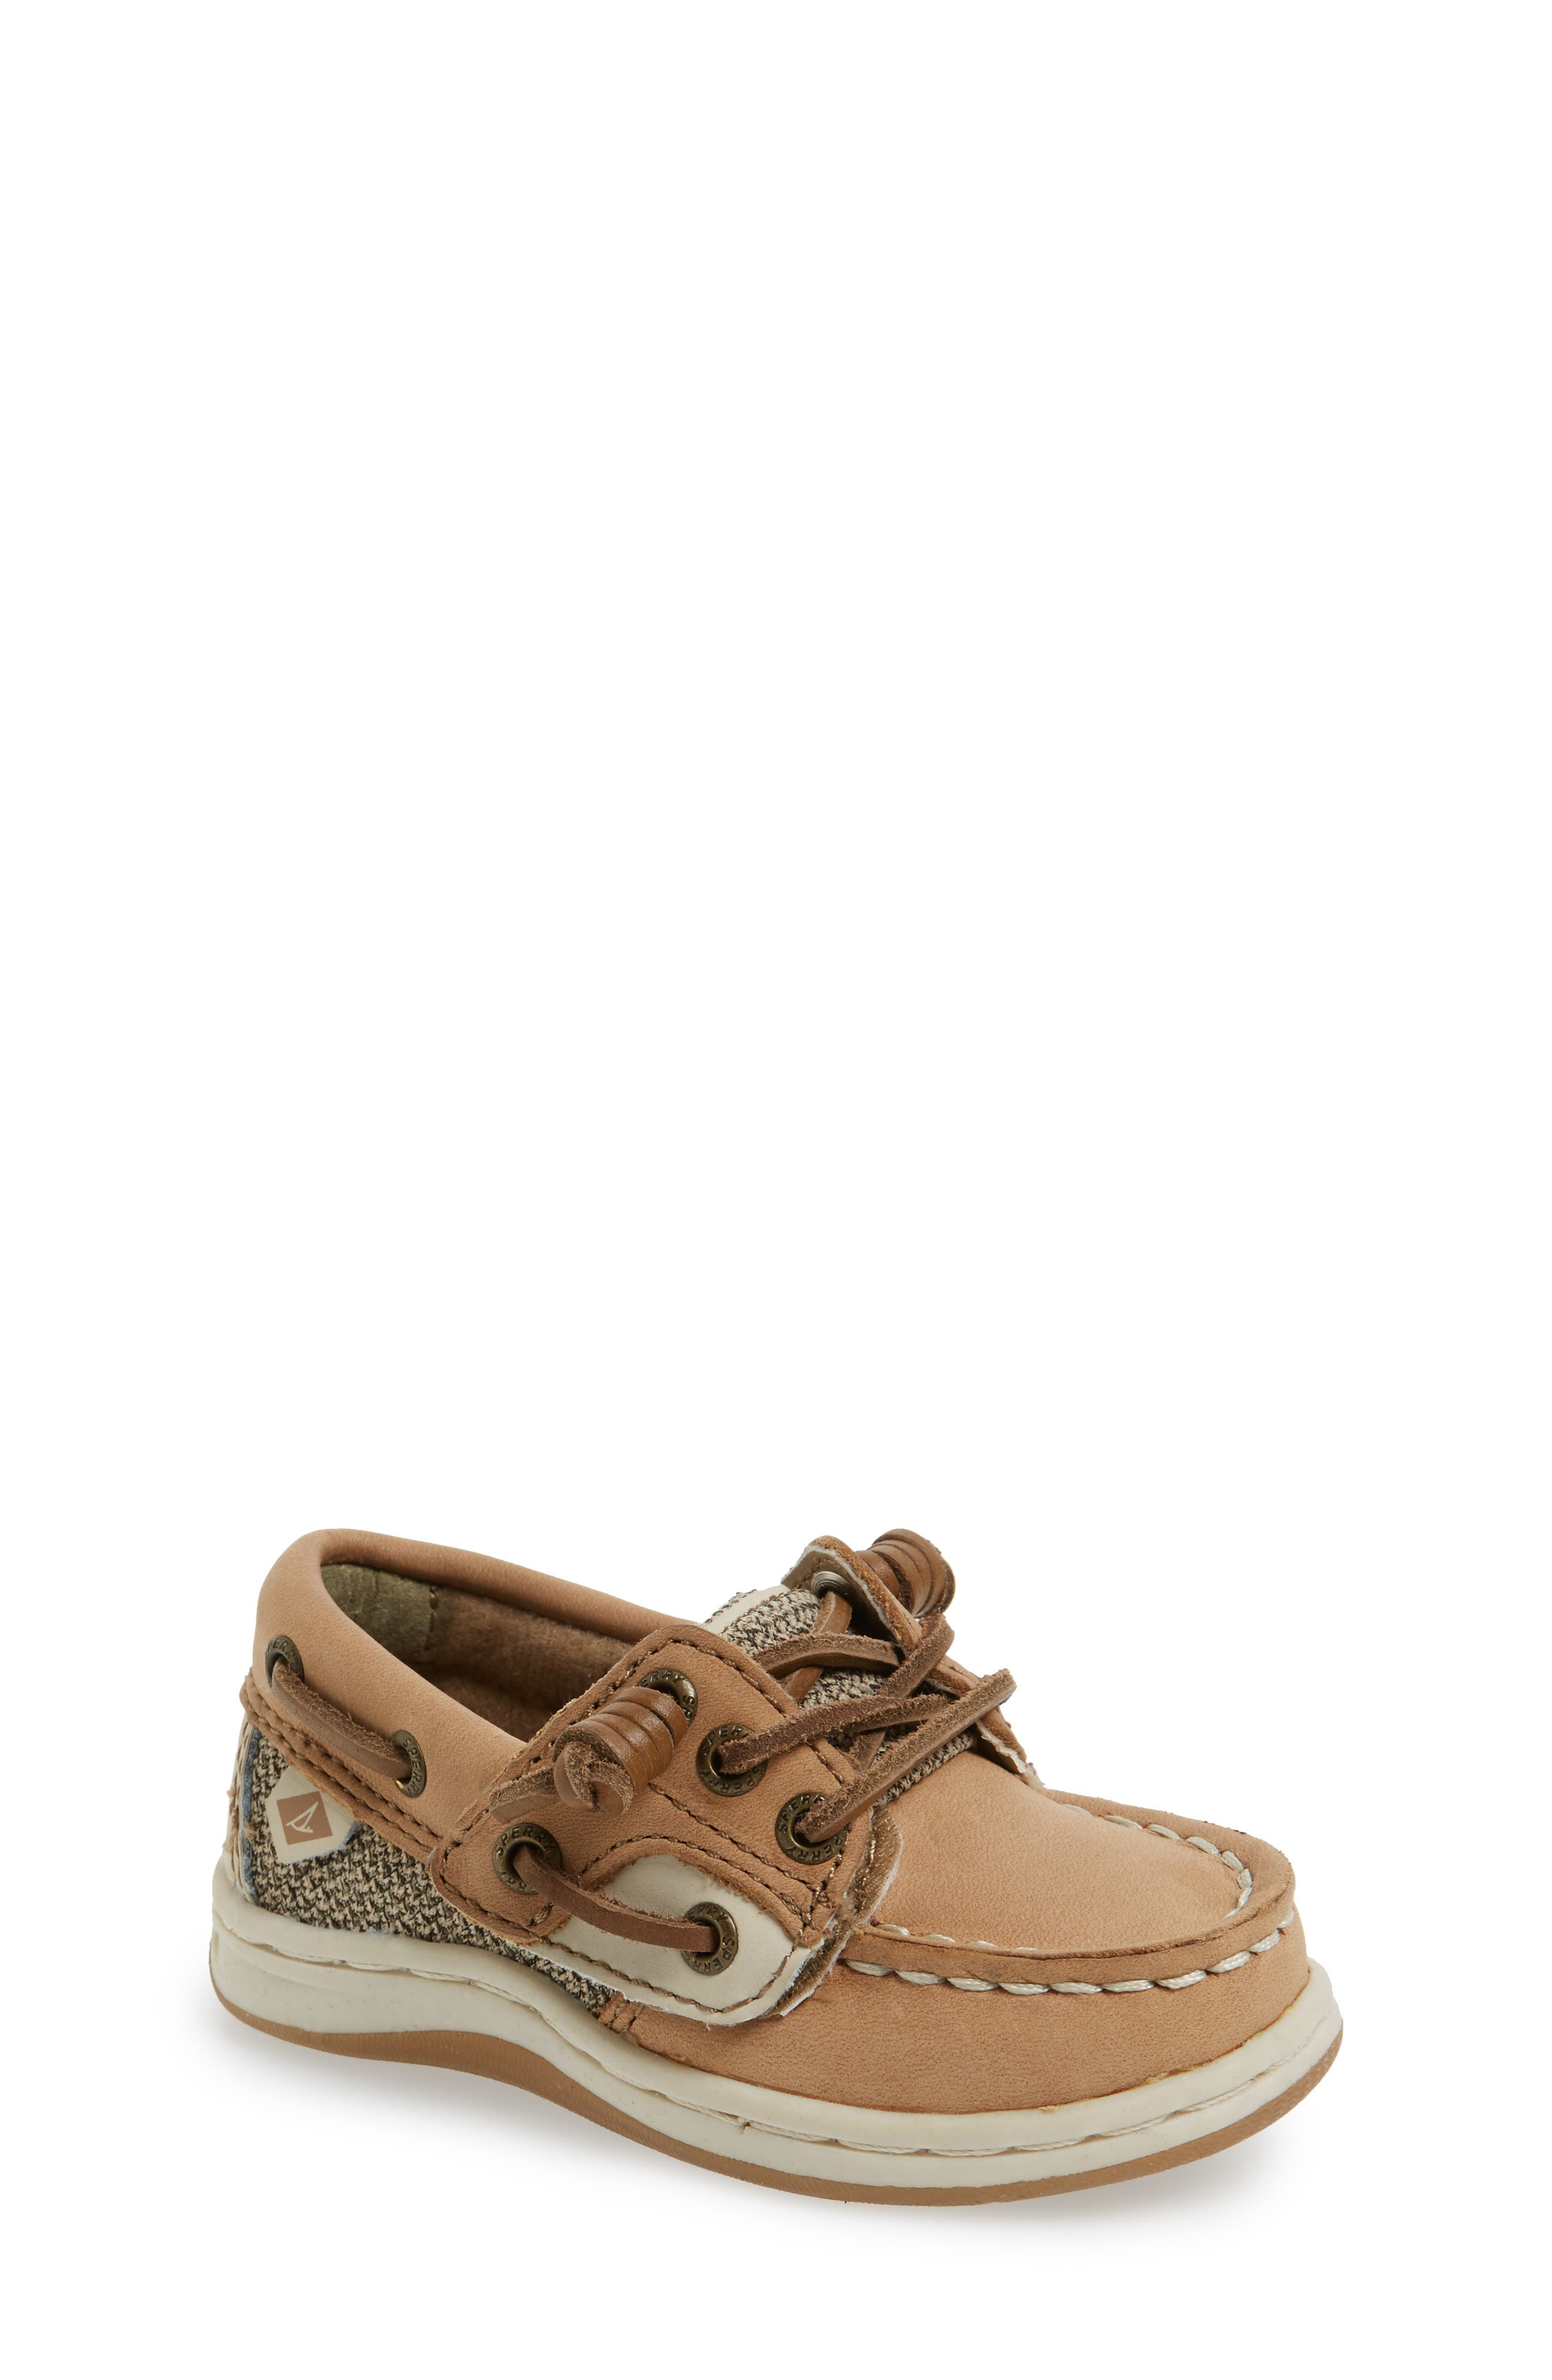 'Songfish' Boat Shoe,                         Main,                         color, LINEN/ OAT LEATHER